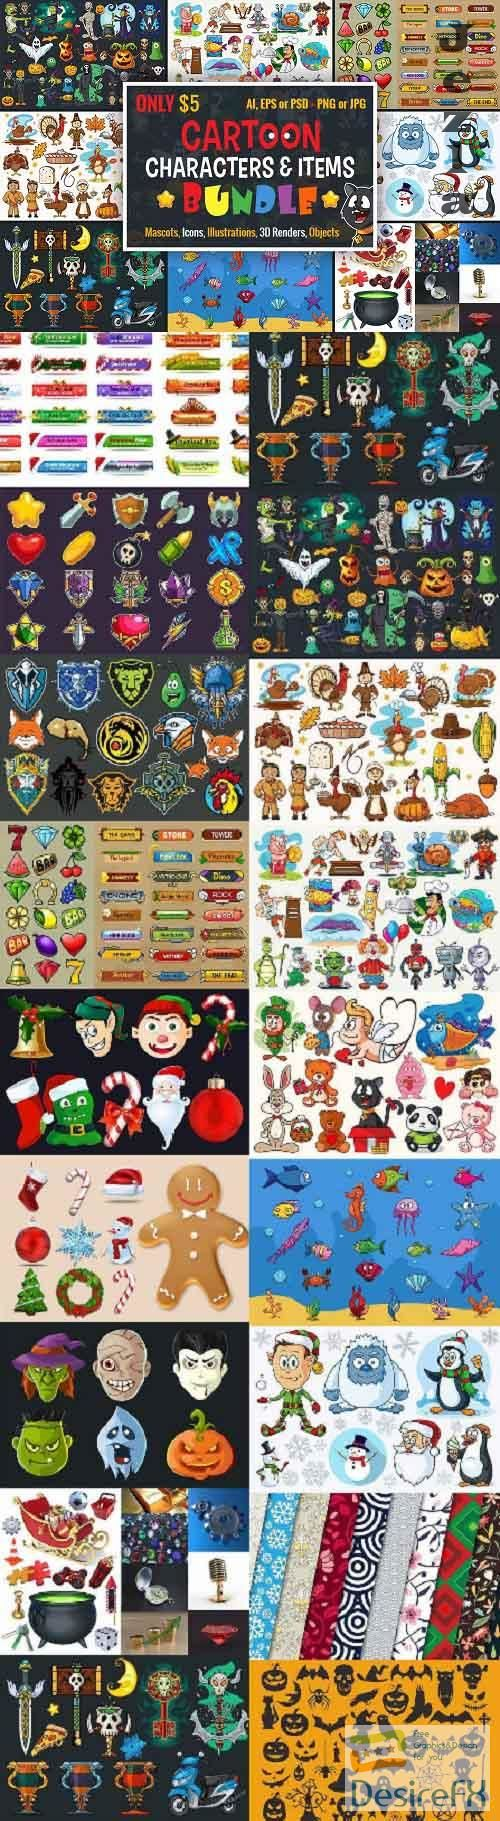 Cartoon Characters & Items Bundle - 1875315